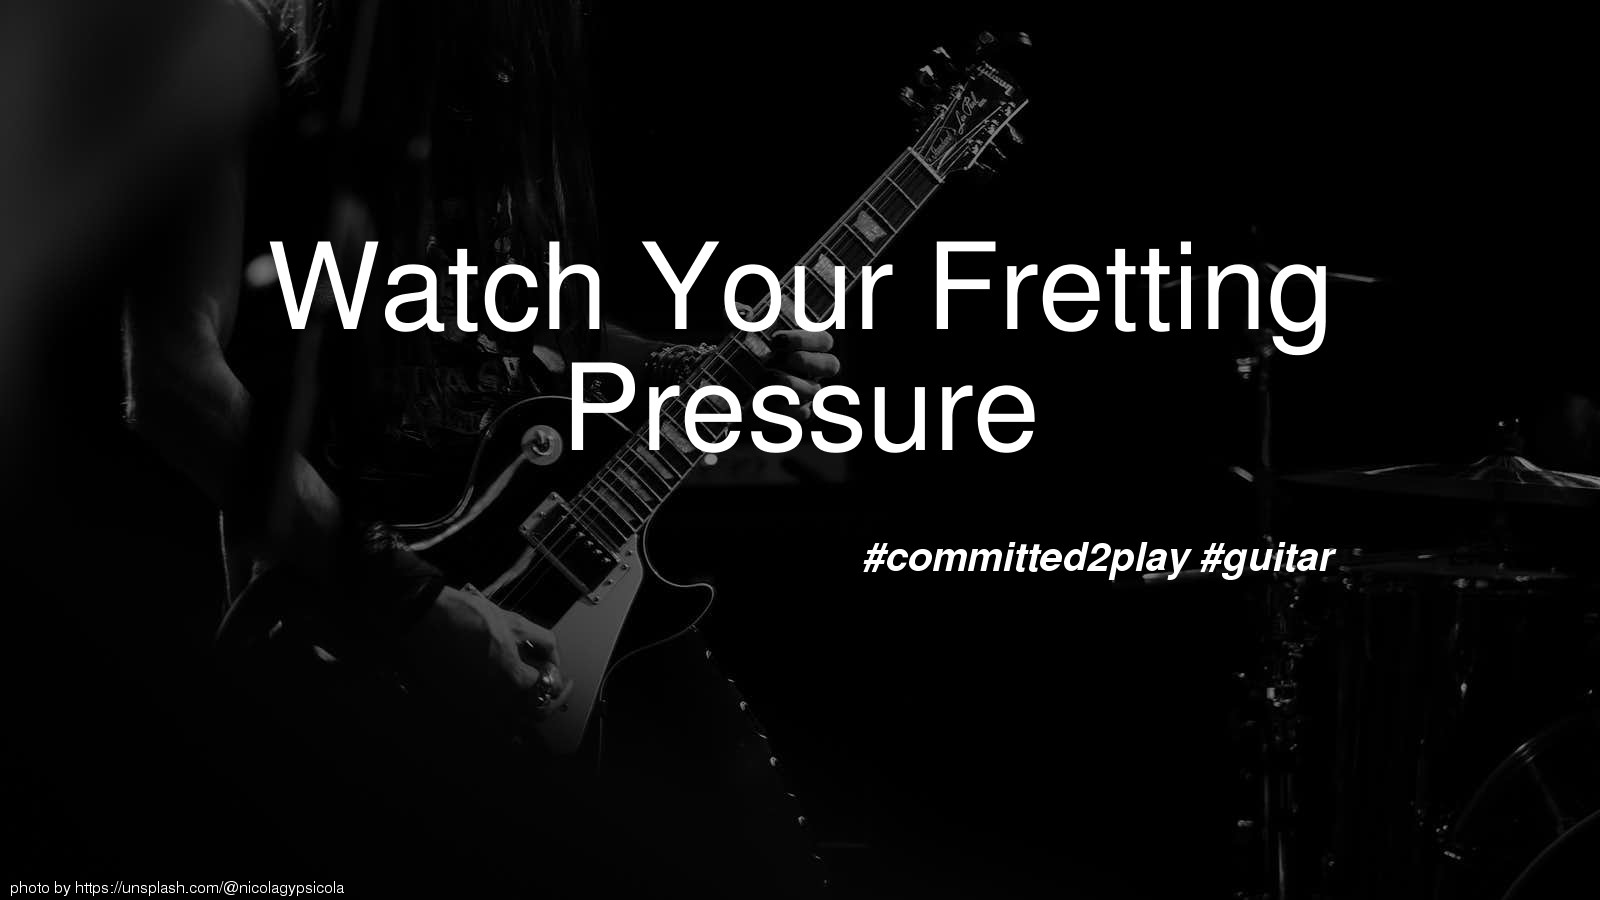 Watch Your Fretting Pressure